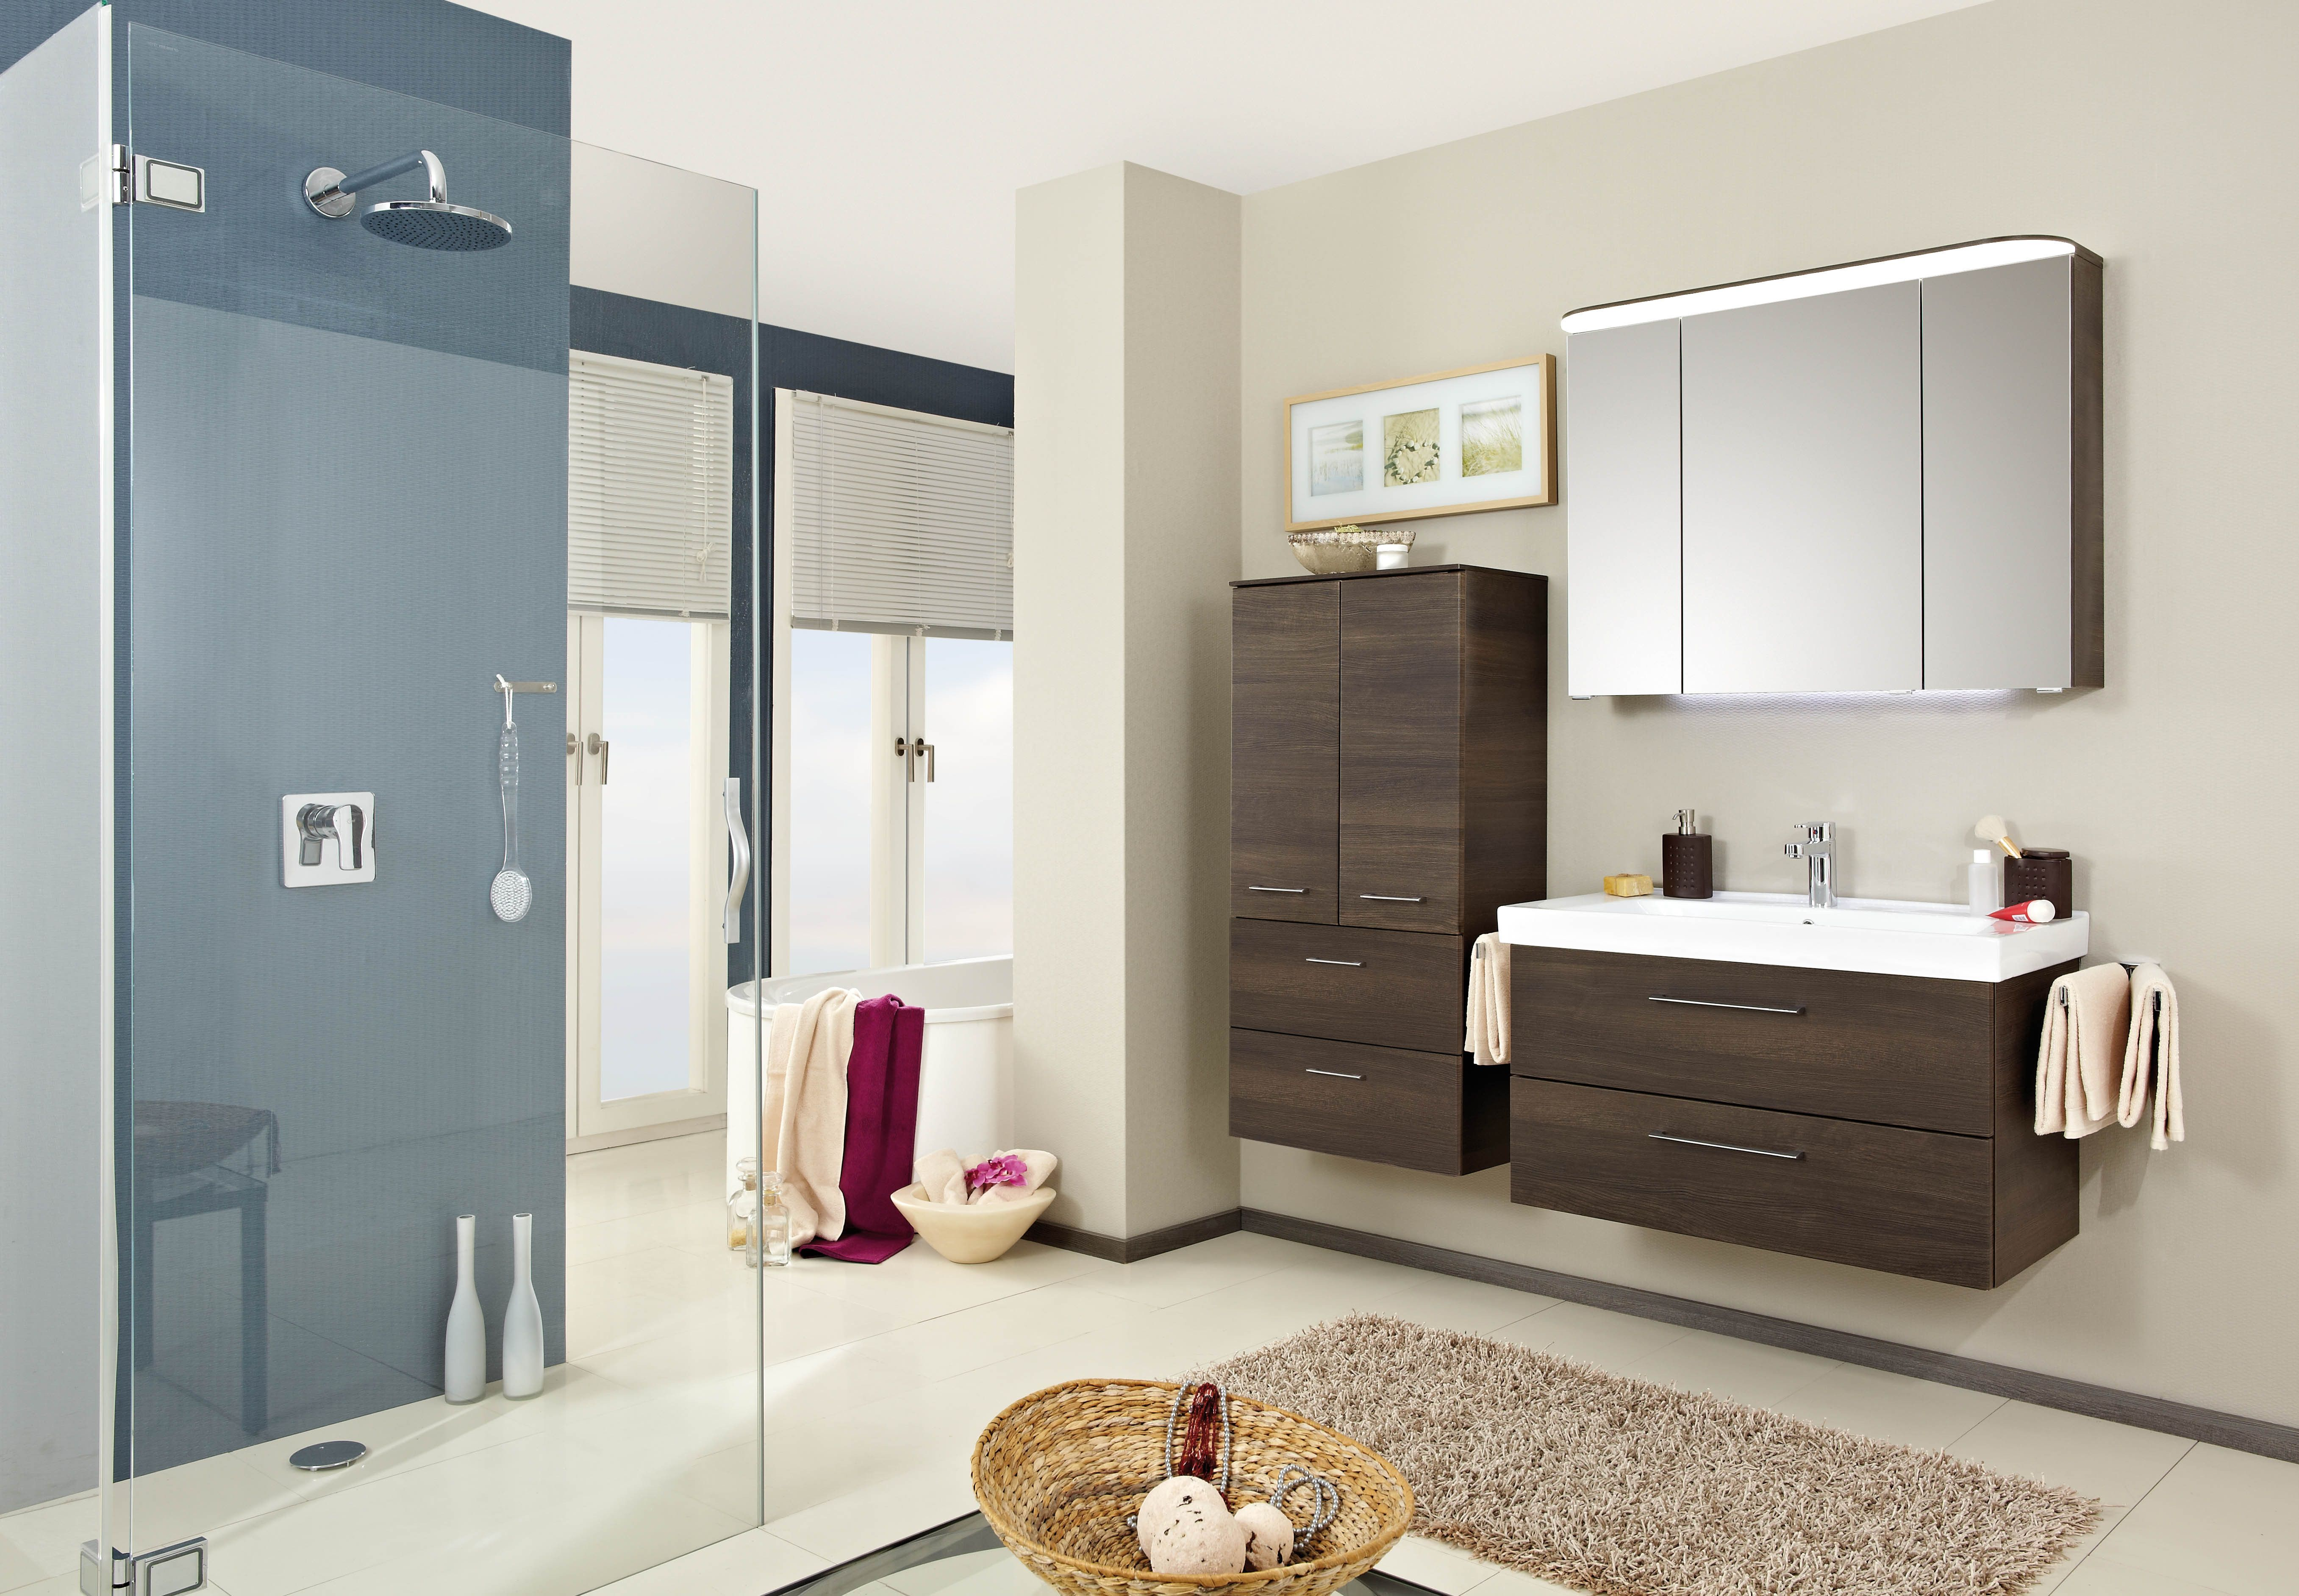 Pelipal Badezimmermöbel ~ Dress your bathroom with storage accessories from pelipal